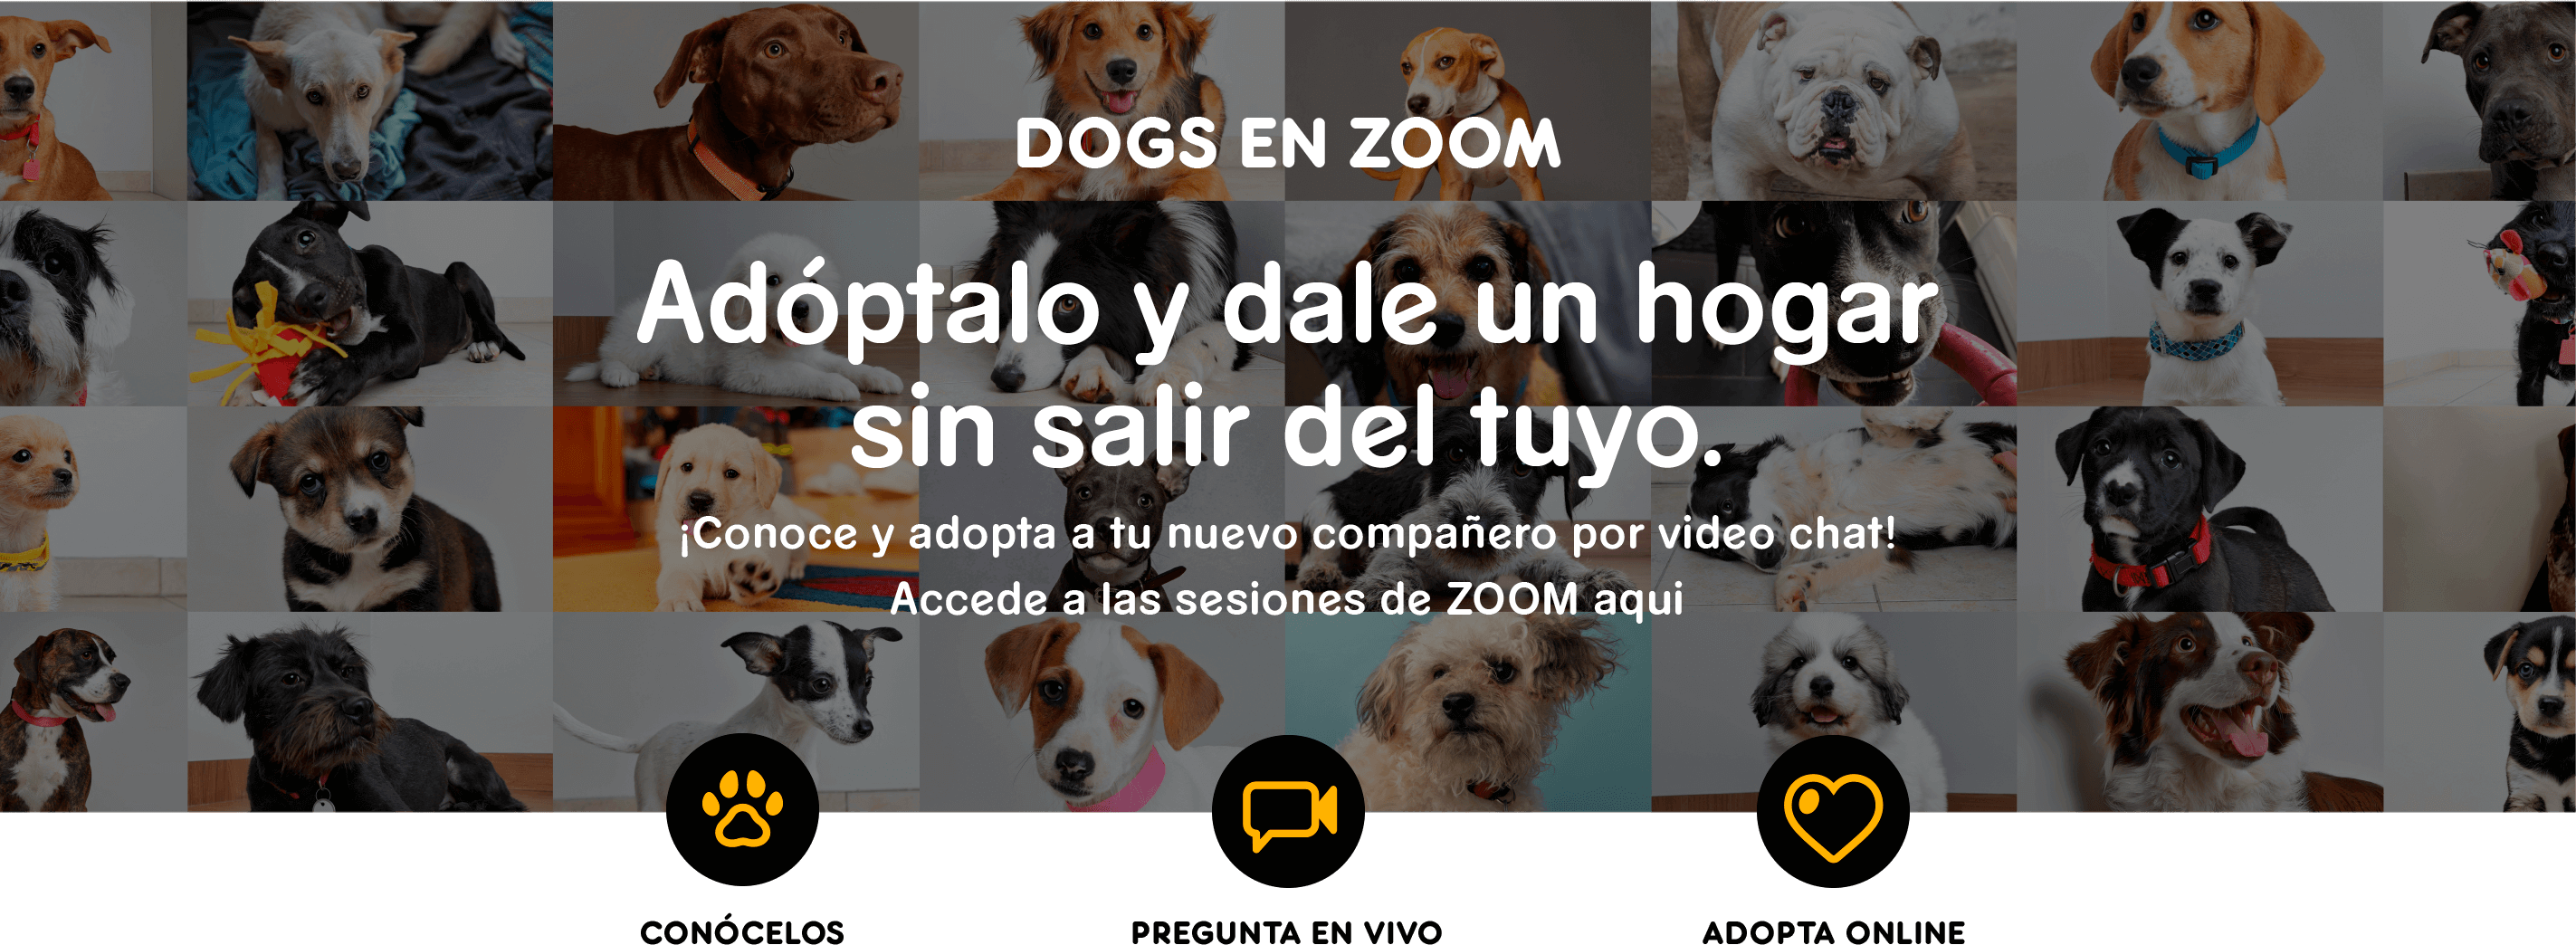 Doogs en zoom